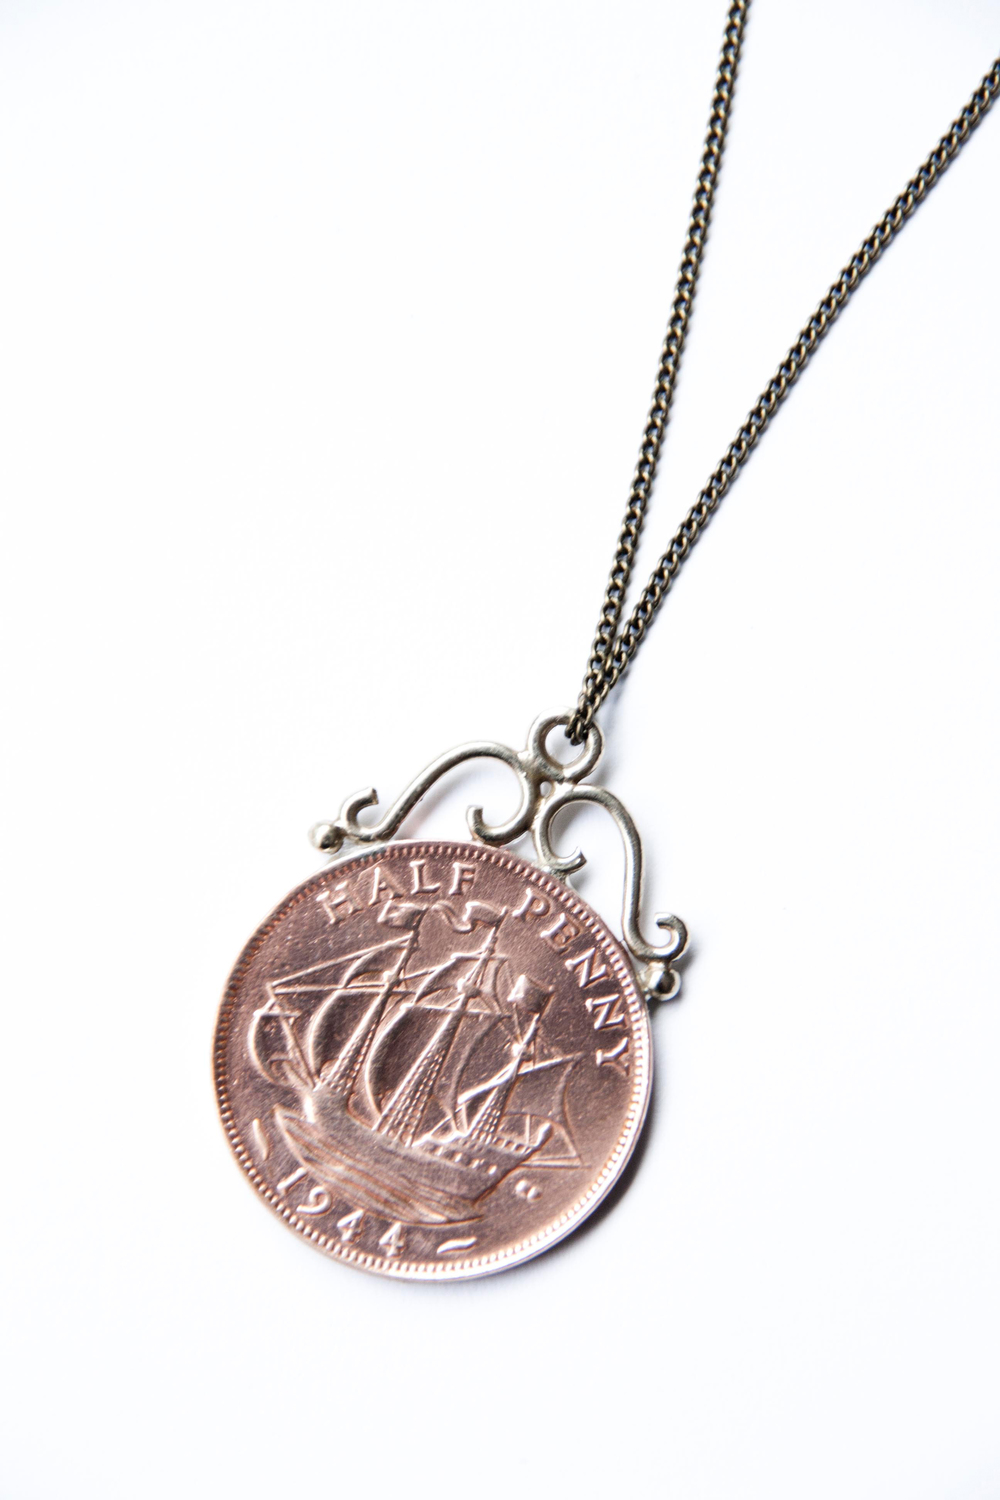 Upcycled copper coin pendant (3208).jpg